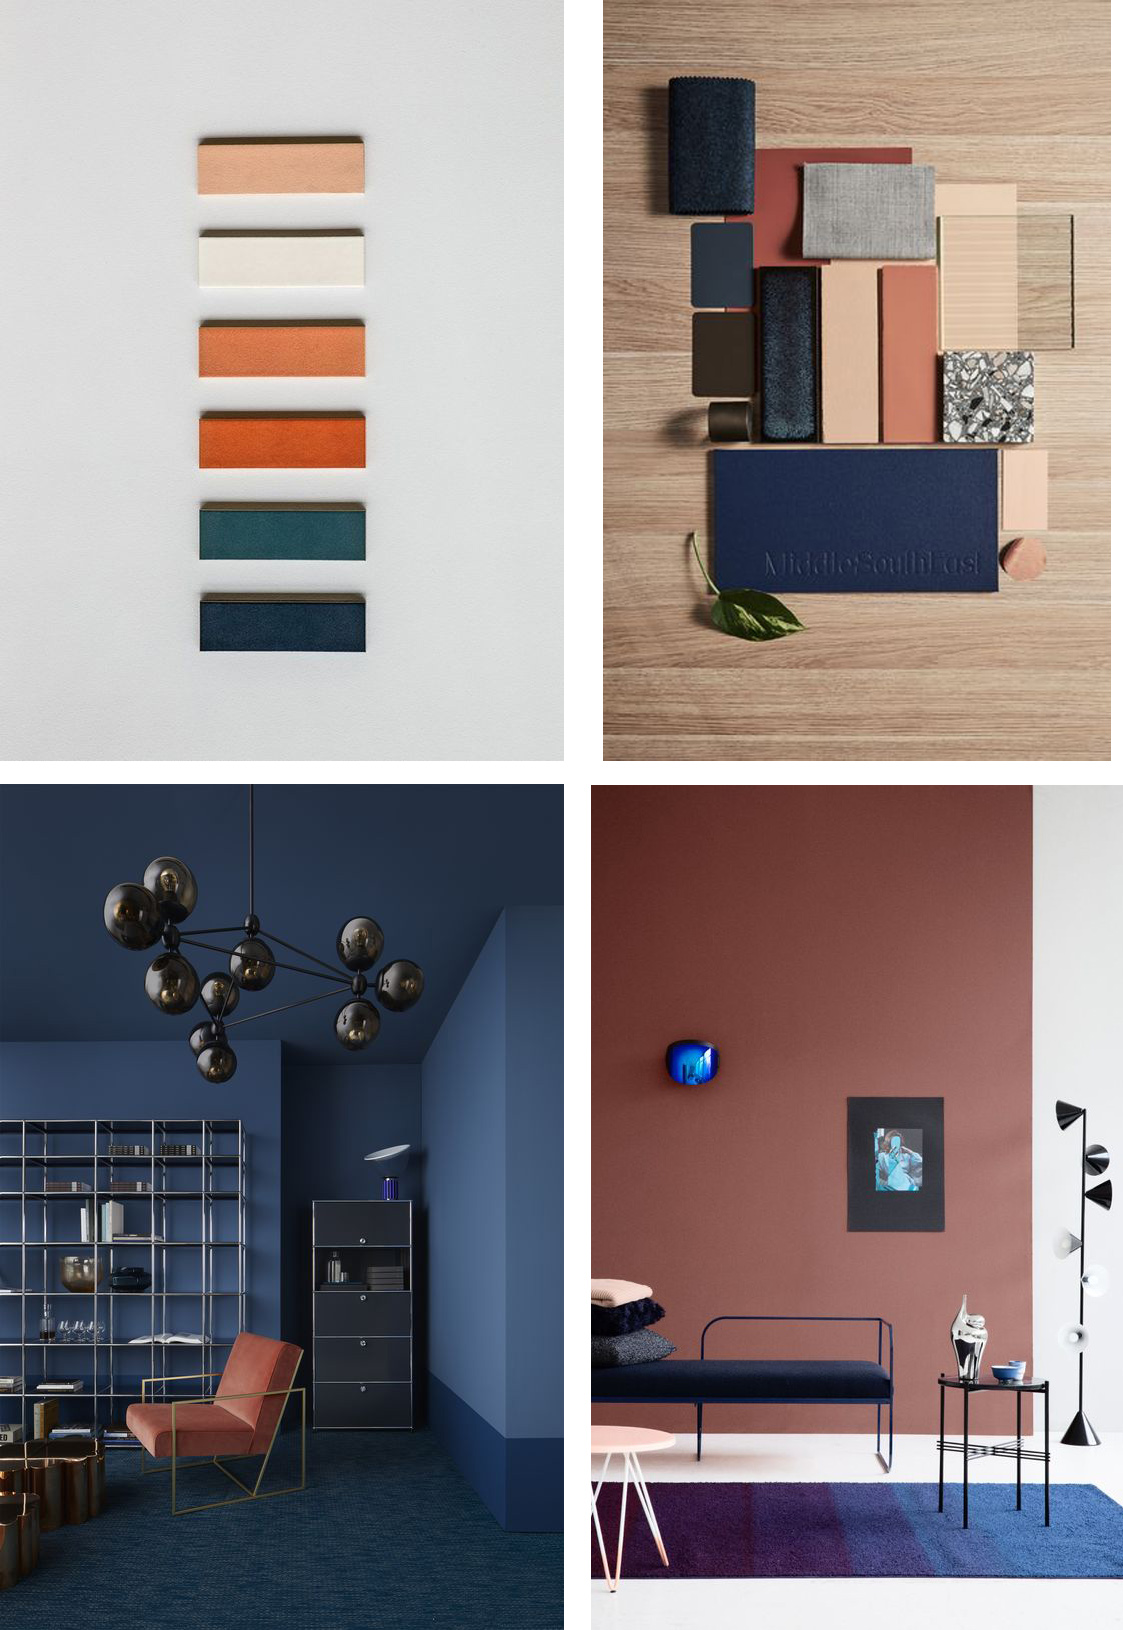 terracotta and blue in interiors